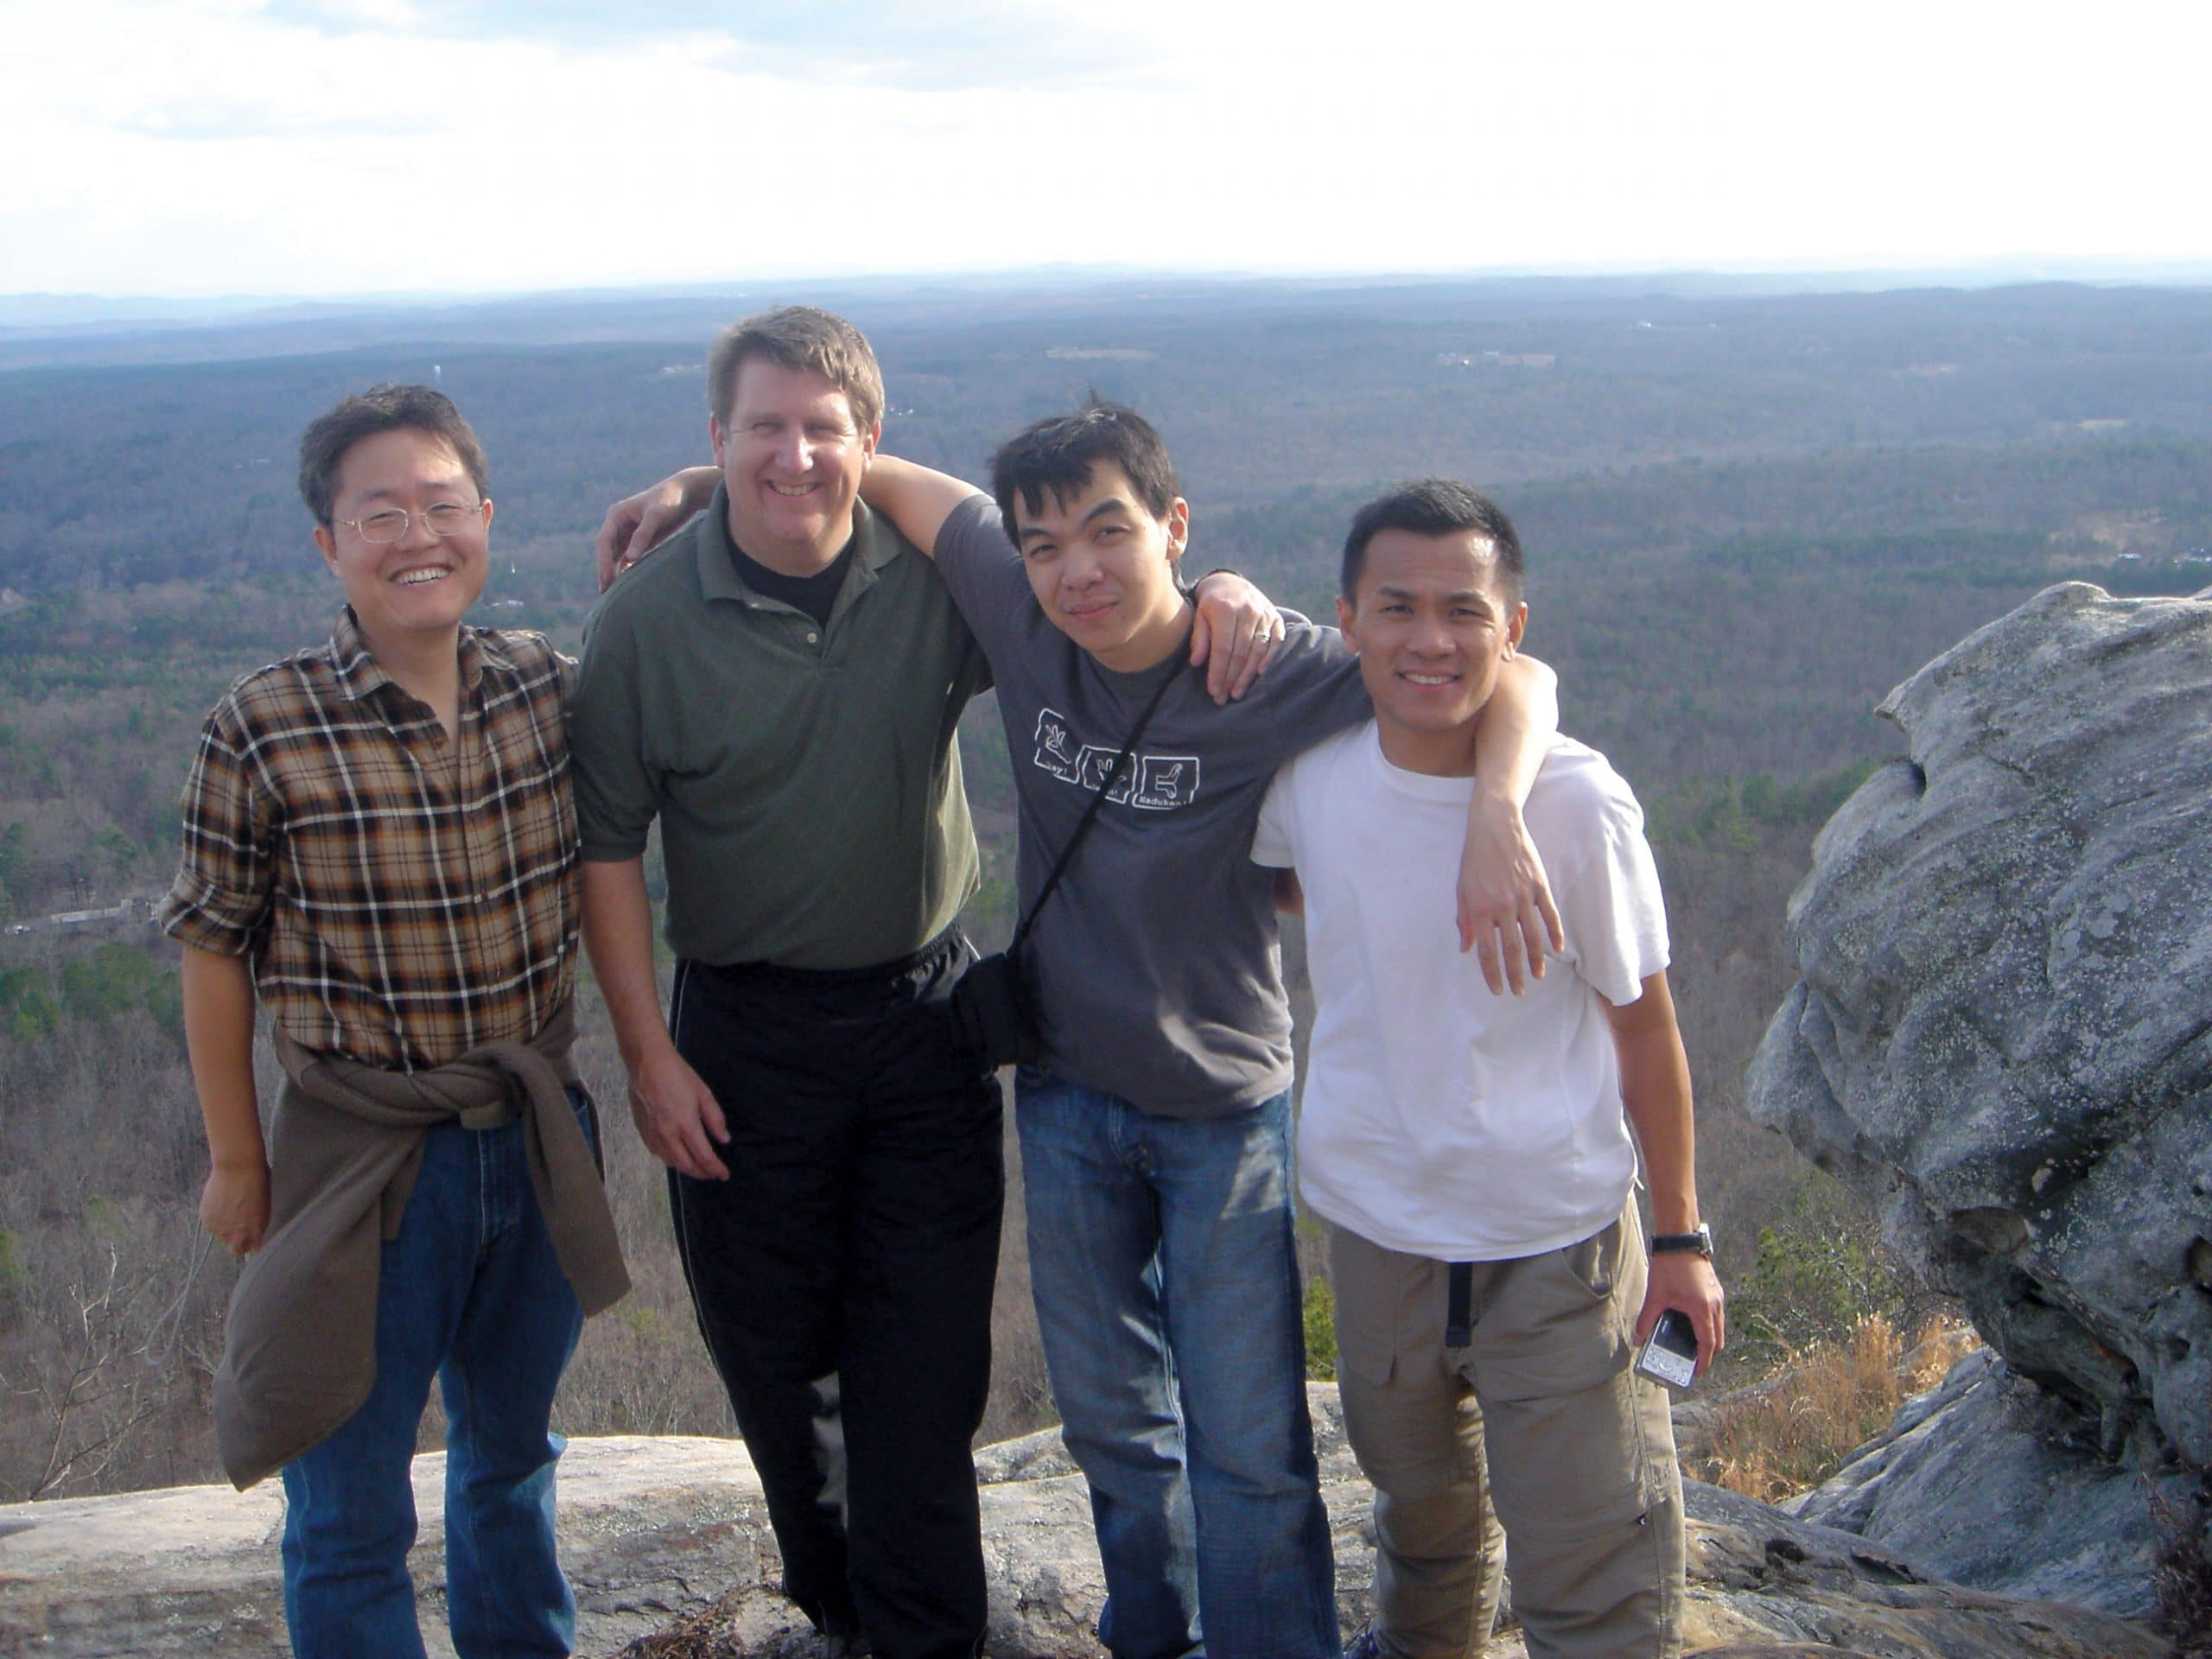 Hiking and exploring the great outdoors helps Navigator Paul Slay, second from left, build friendships with international students and demonstrate to them the love of Christ.